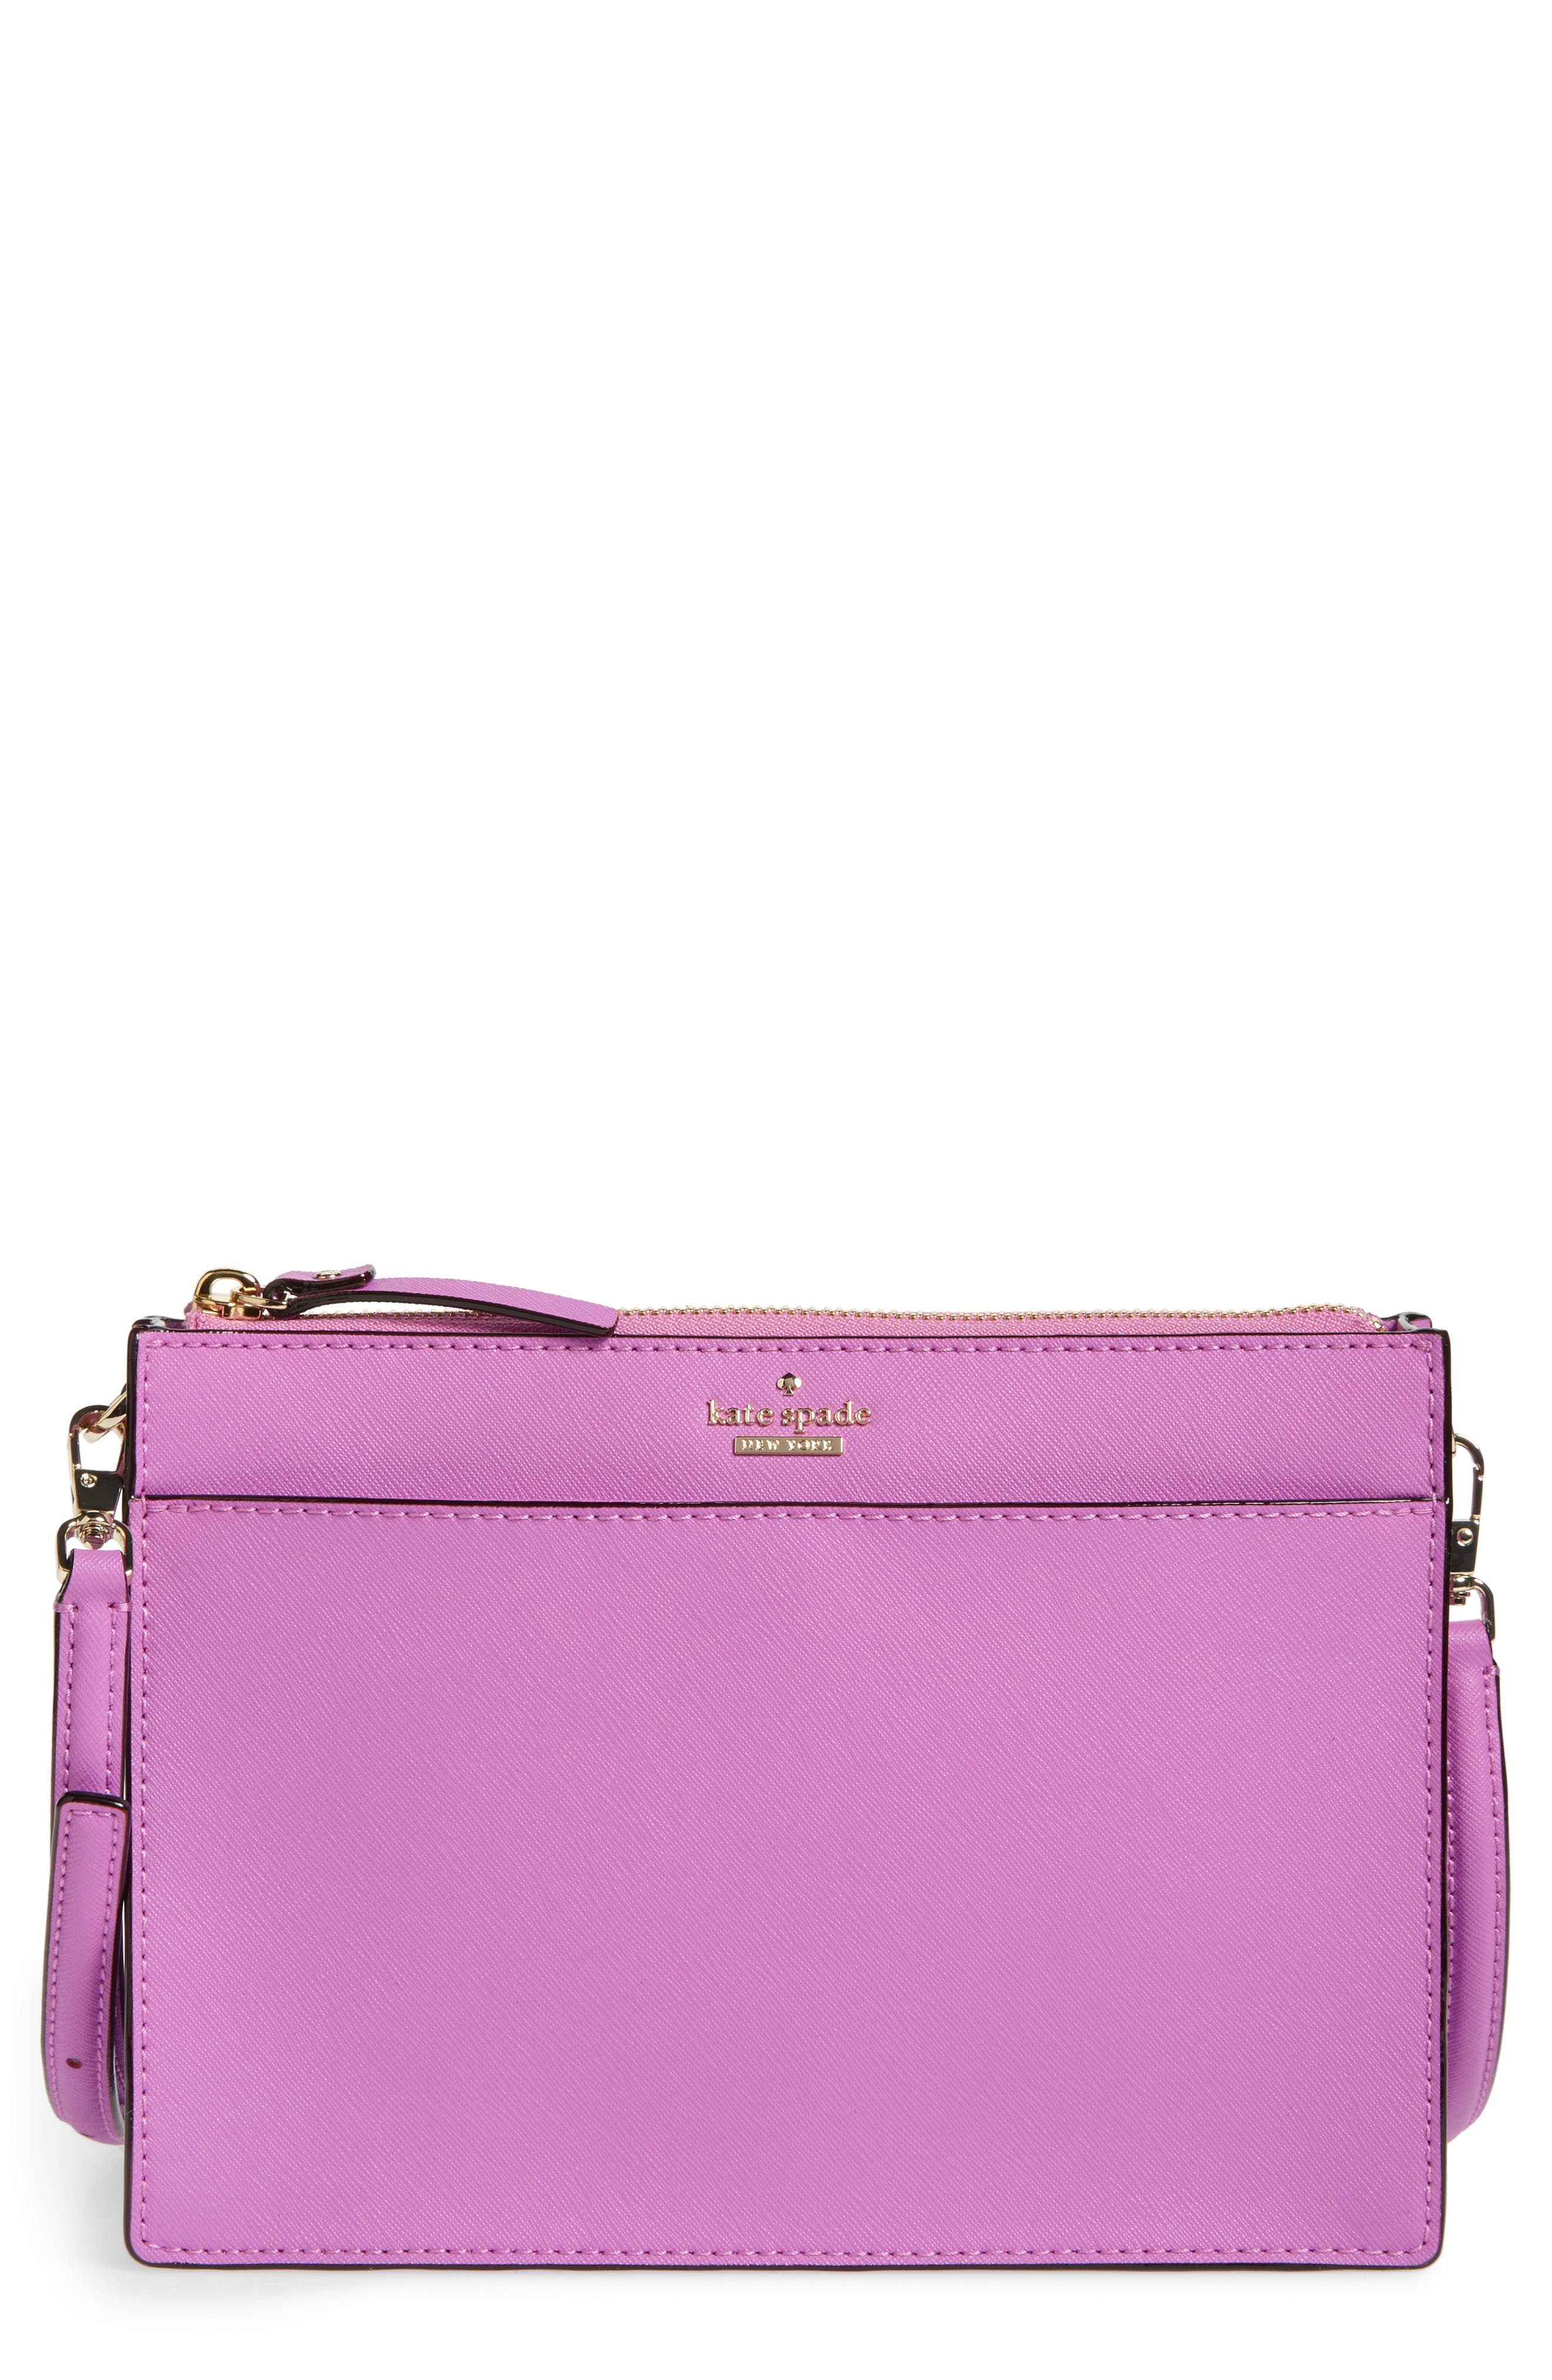 KATE SPADE NEW YORK cameron street clarise leather